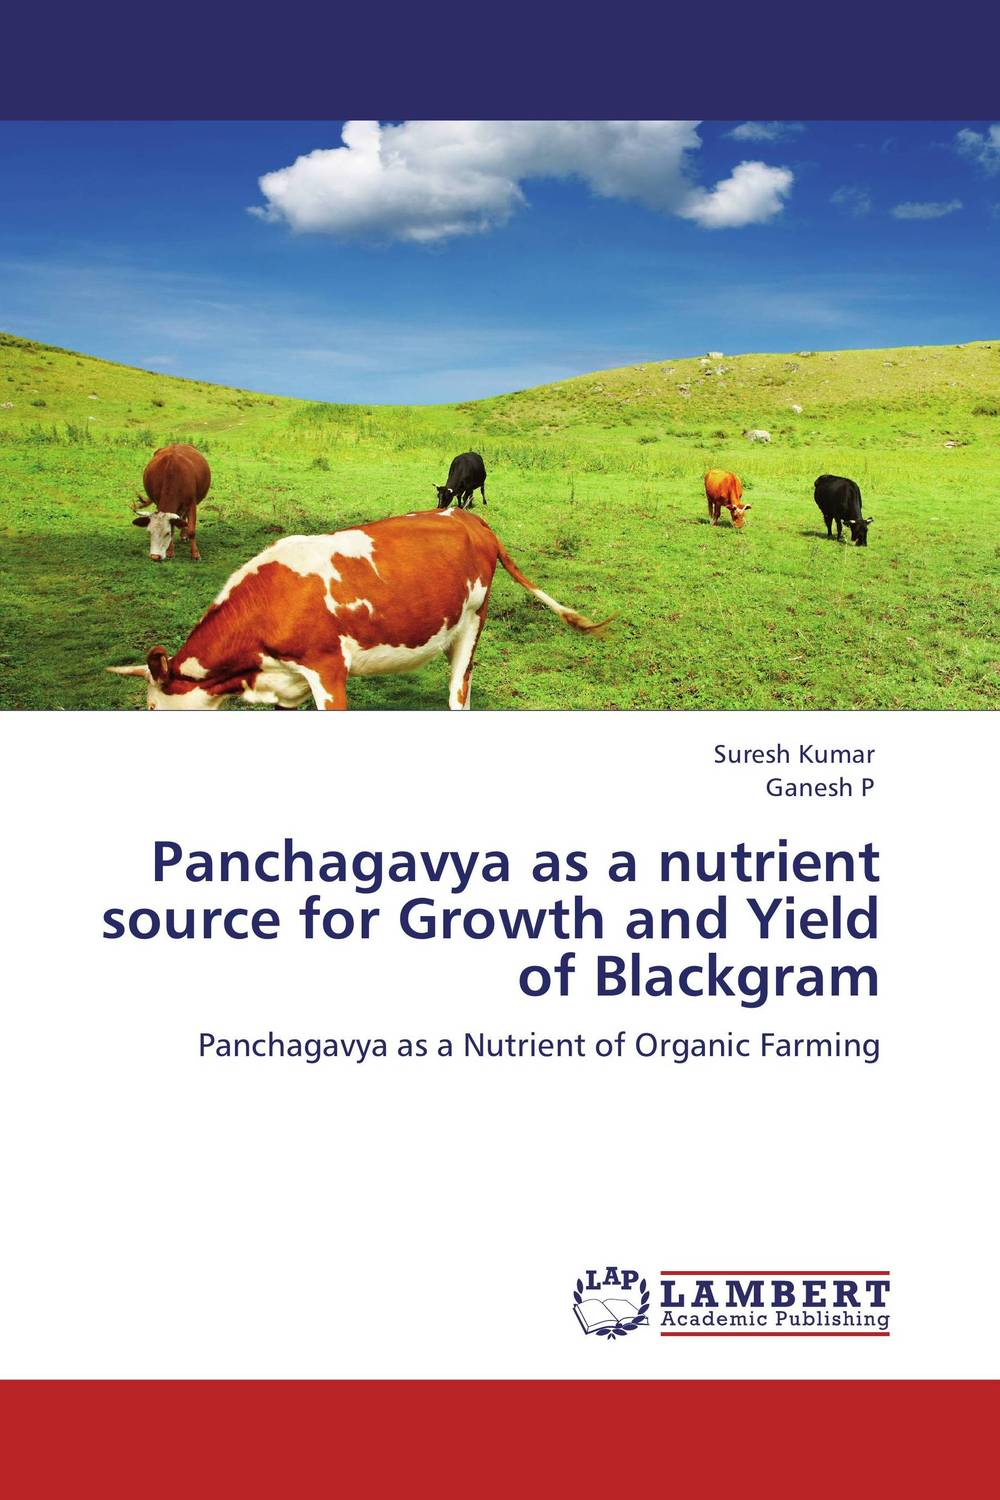 Panchagavya as a nutrient source for Growth and Yield of Blackgram evaluation of lucern as a predator source for wheat aphids